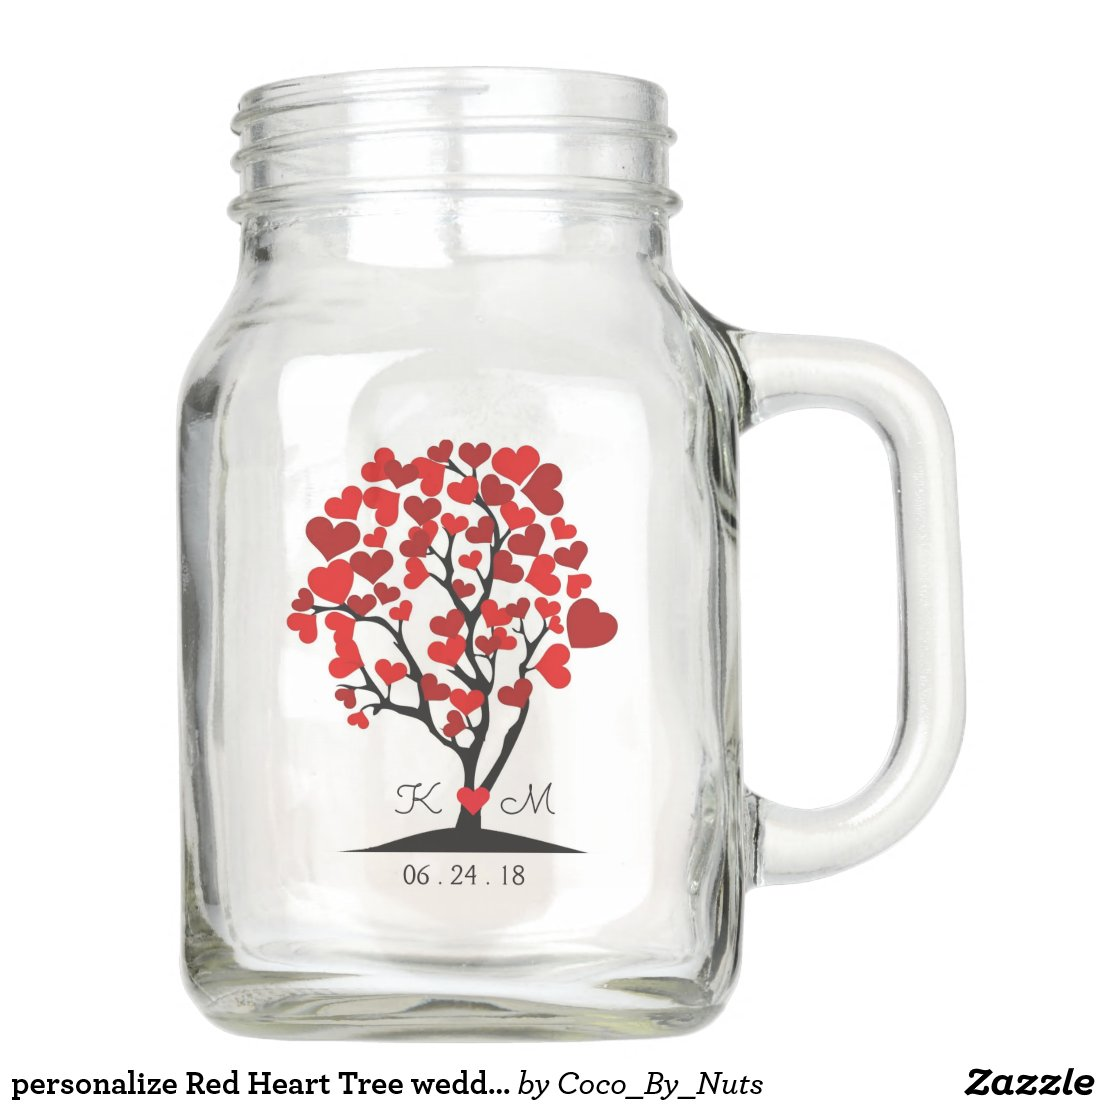 personalise Red Heart Tree wedding mason jar